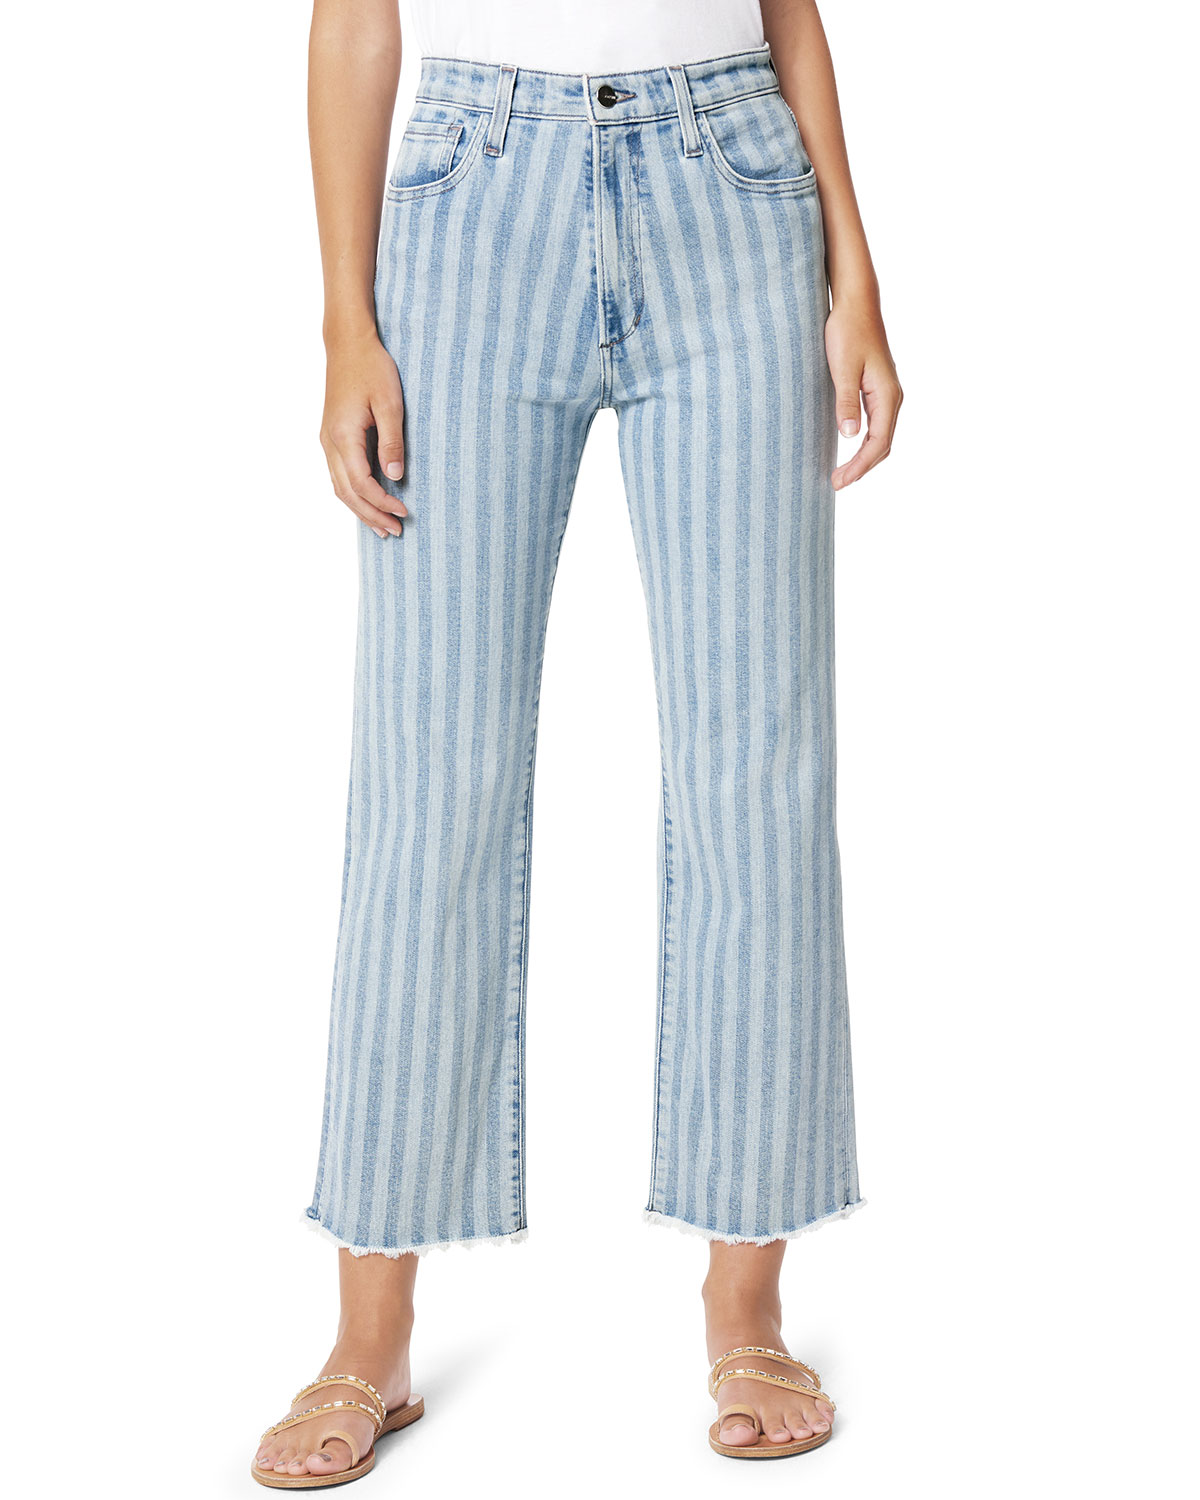 The Blake Striped Wide-Leg Jeans with Frayed Hem